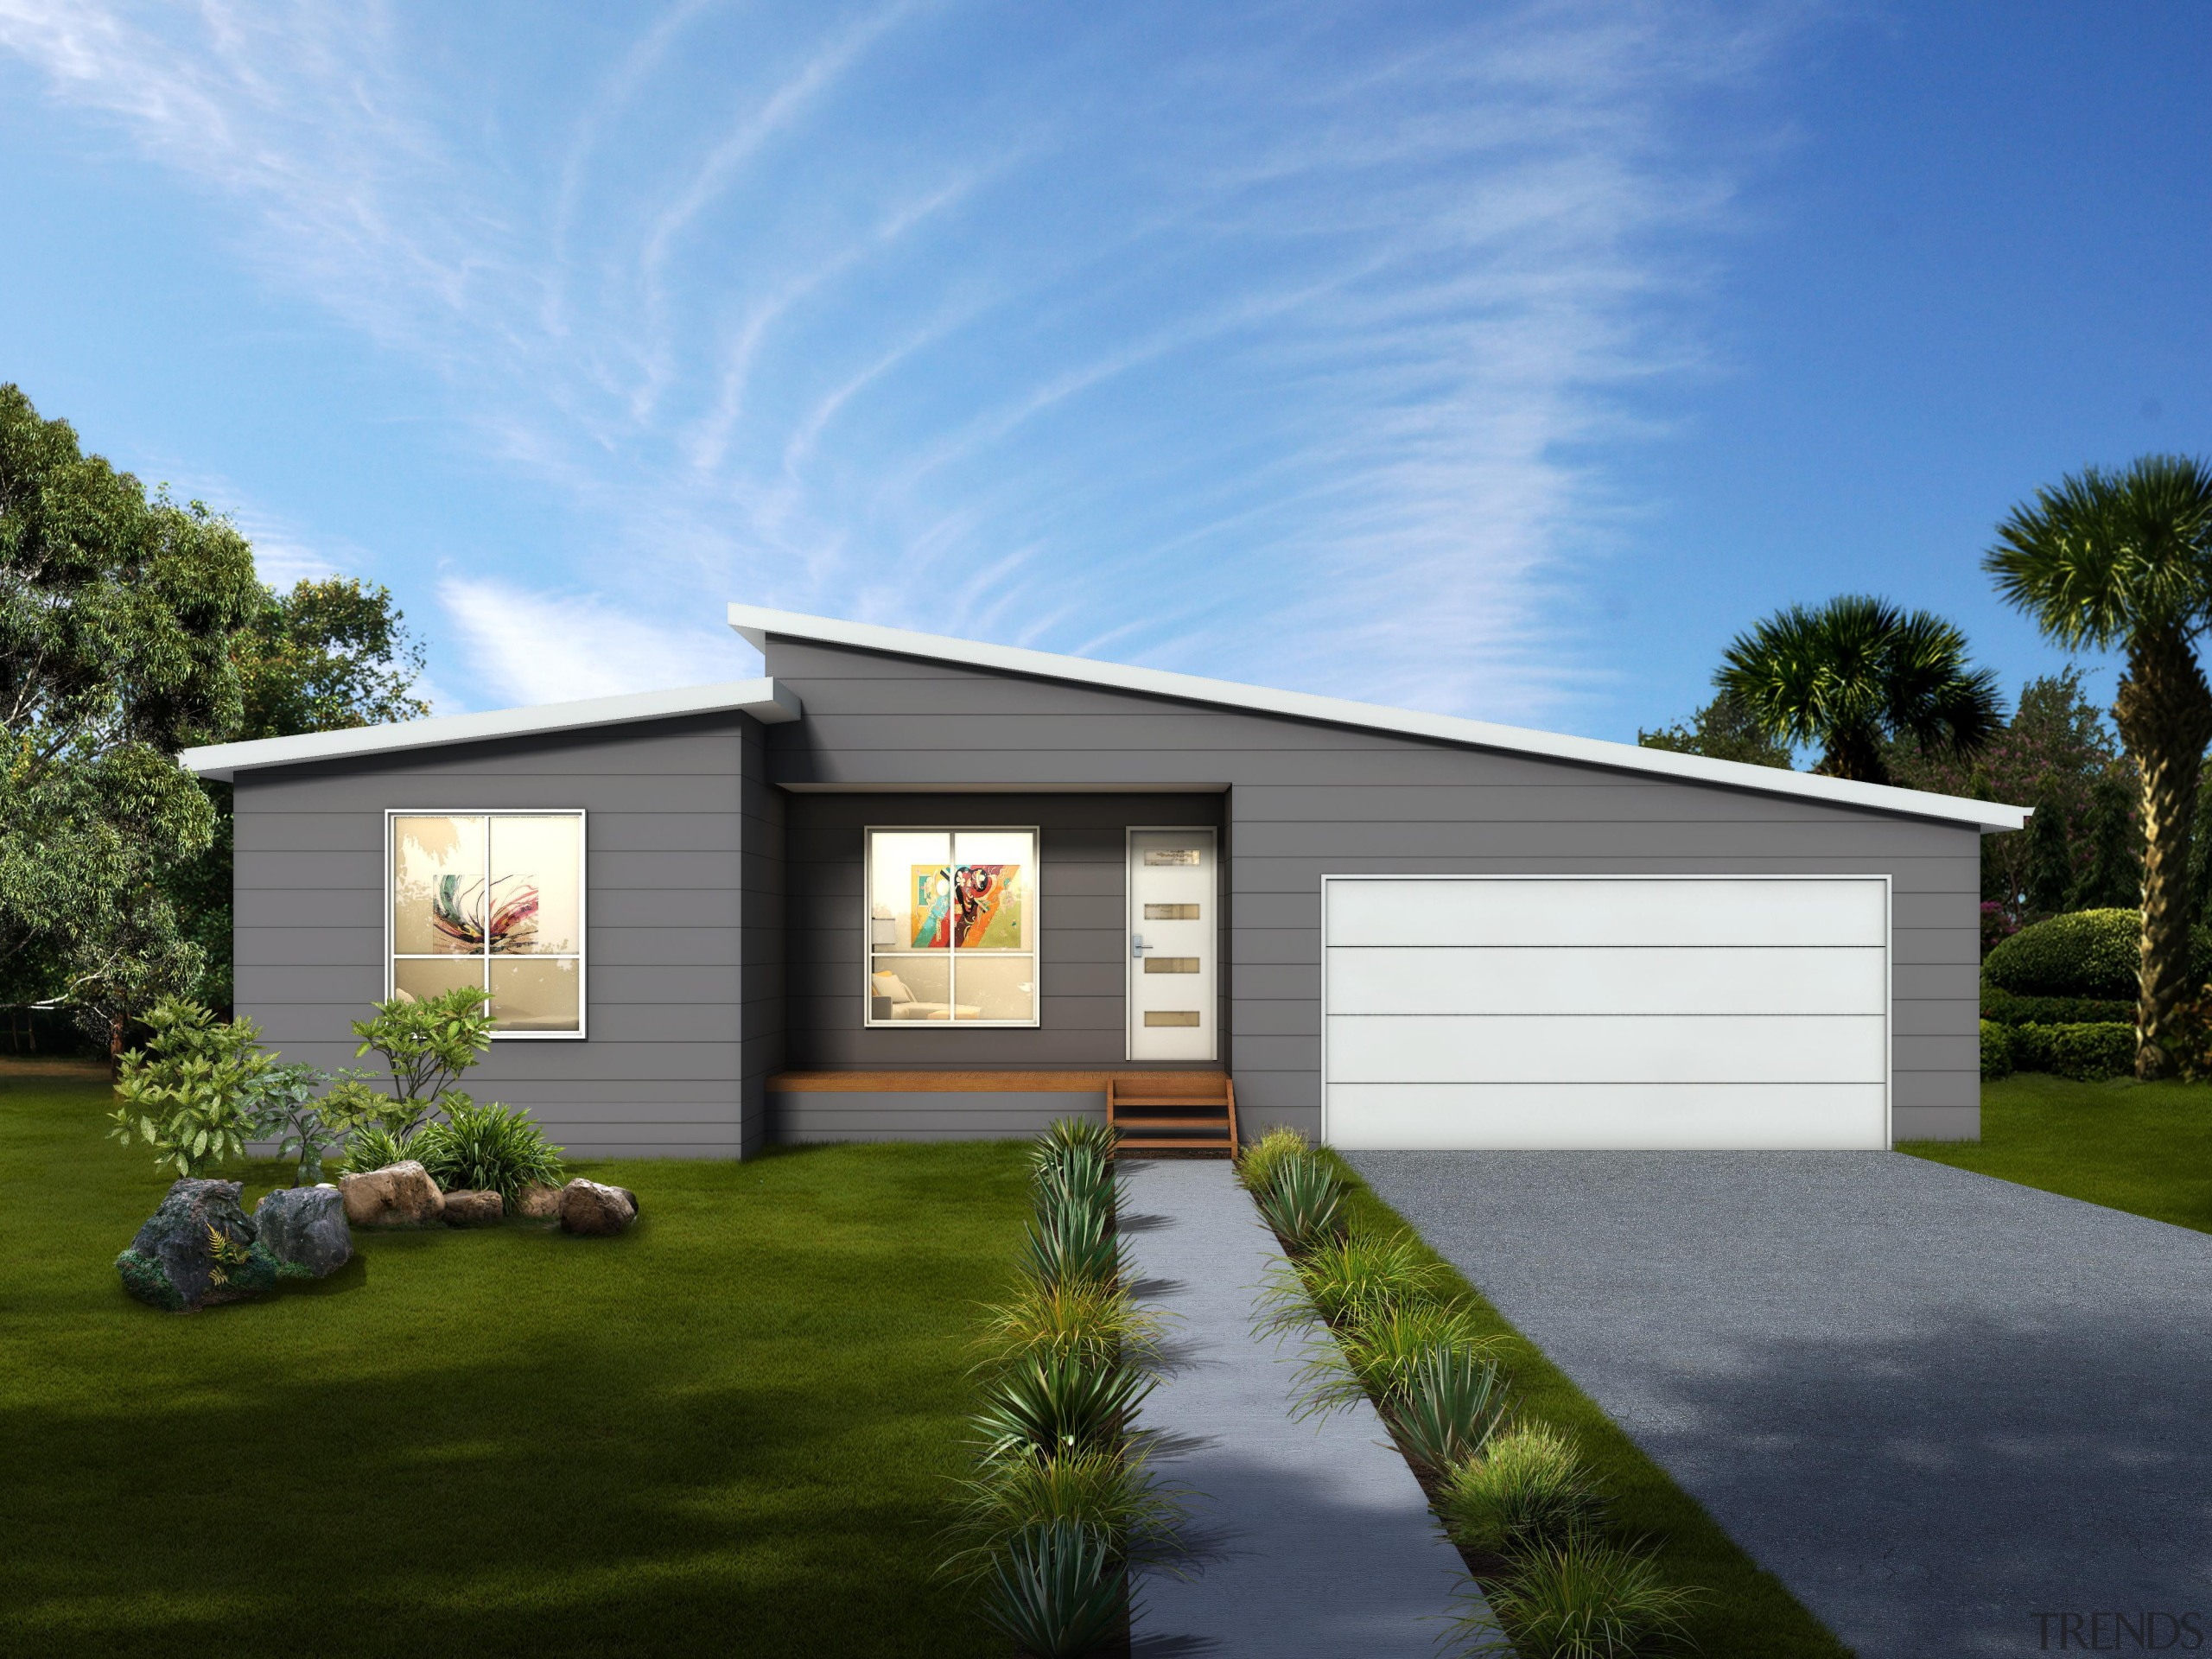 19.6 m x 12.0 mBedrooms: 4 + studyBathrooms: architecture, cottage, elevation, facade, home, house, landscape, luxury vehicle, property, real estate, residential area, shed, siding, sky, teal